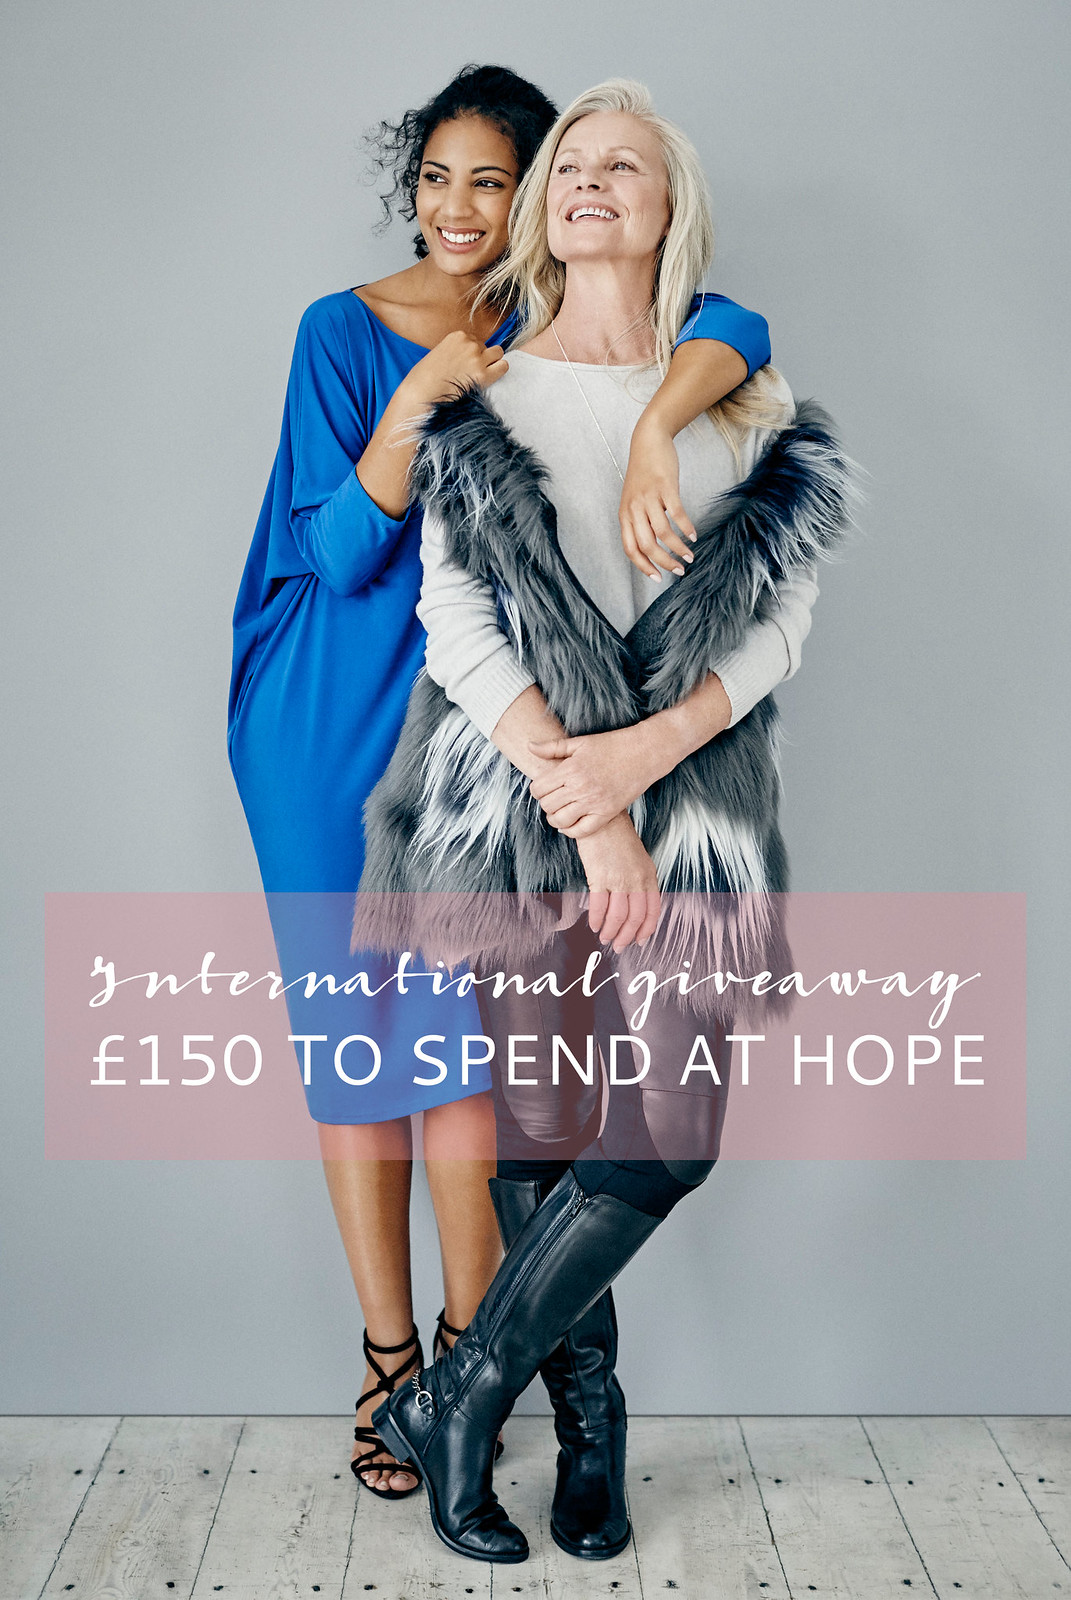 Over 40 fashion brand Hope AW15